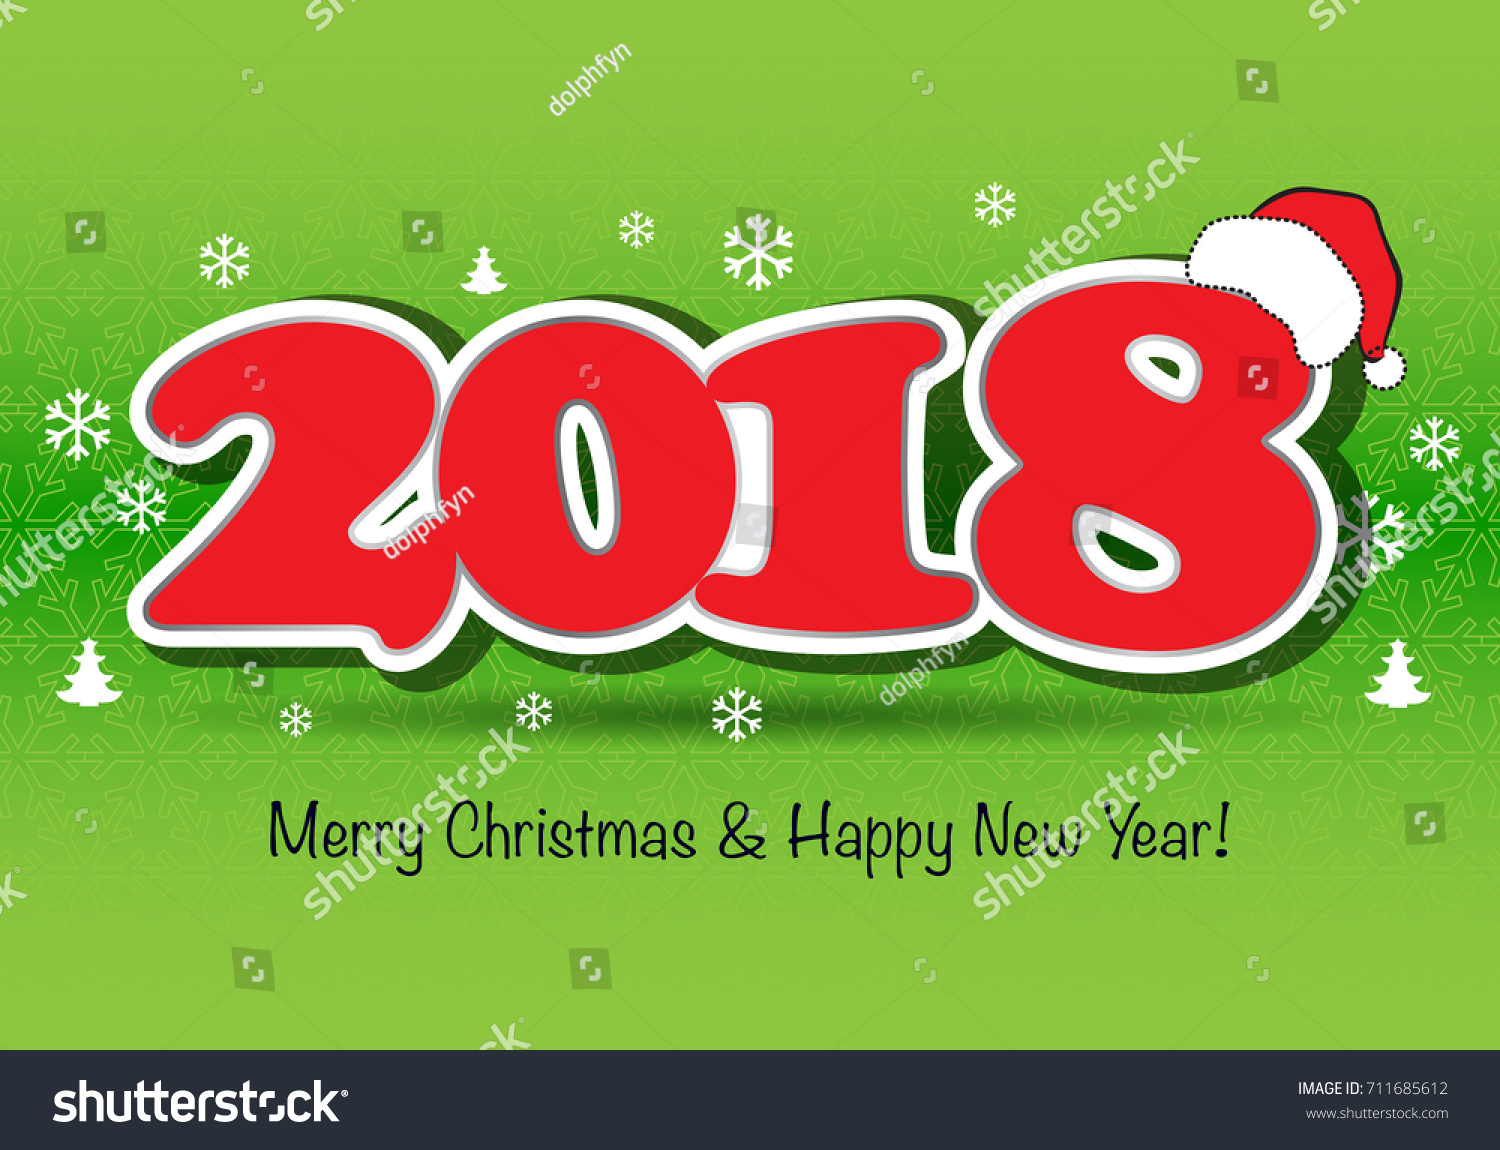 christmas day 2018 vector illustration colorful design wishing you wonderful memories during this joyous - Christmas Day 2018